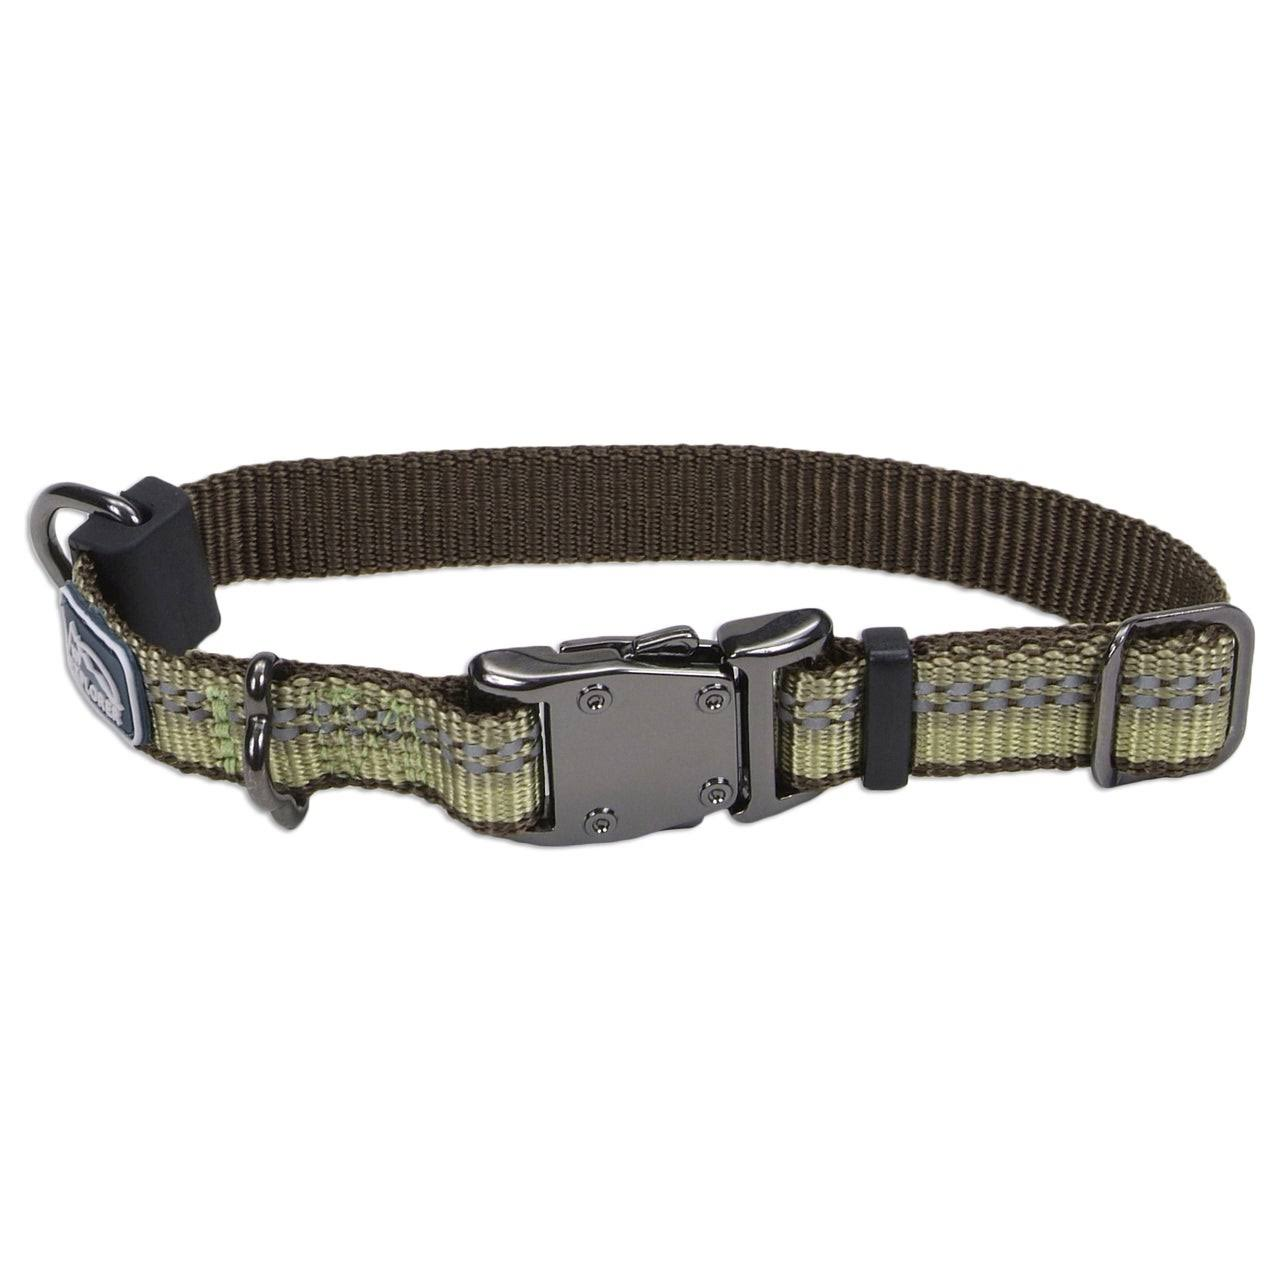 "Coastal Pet Products K9 Explorer Reflective Safety Dog Collar - Fern Green, 5/8"" x 10-14"""